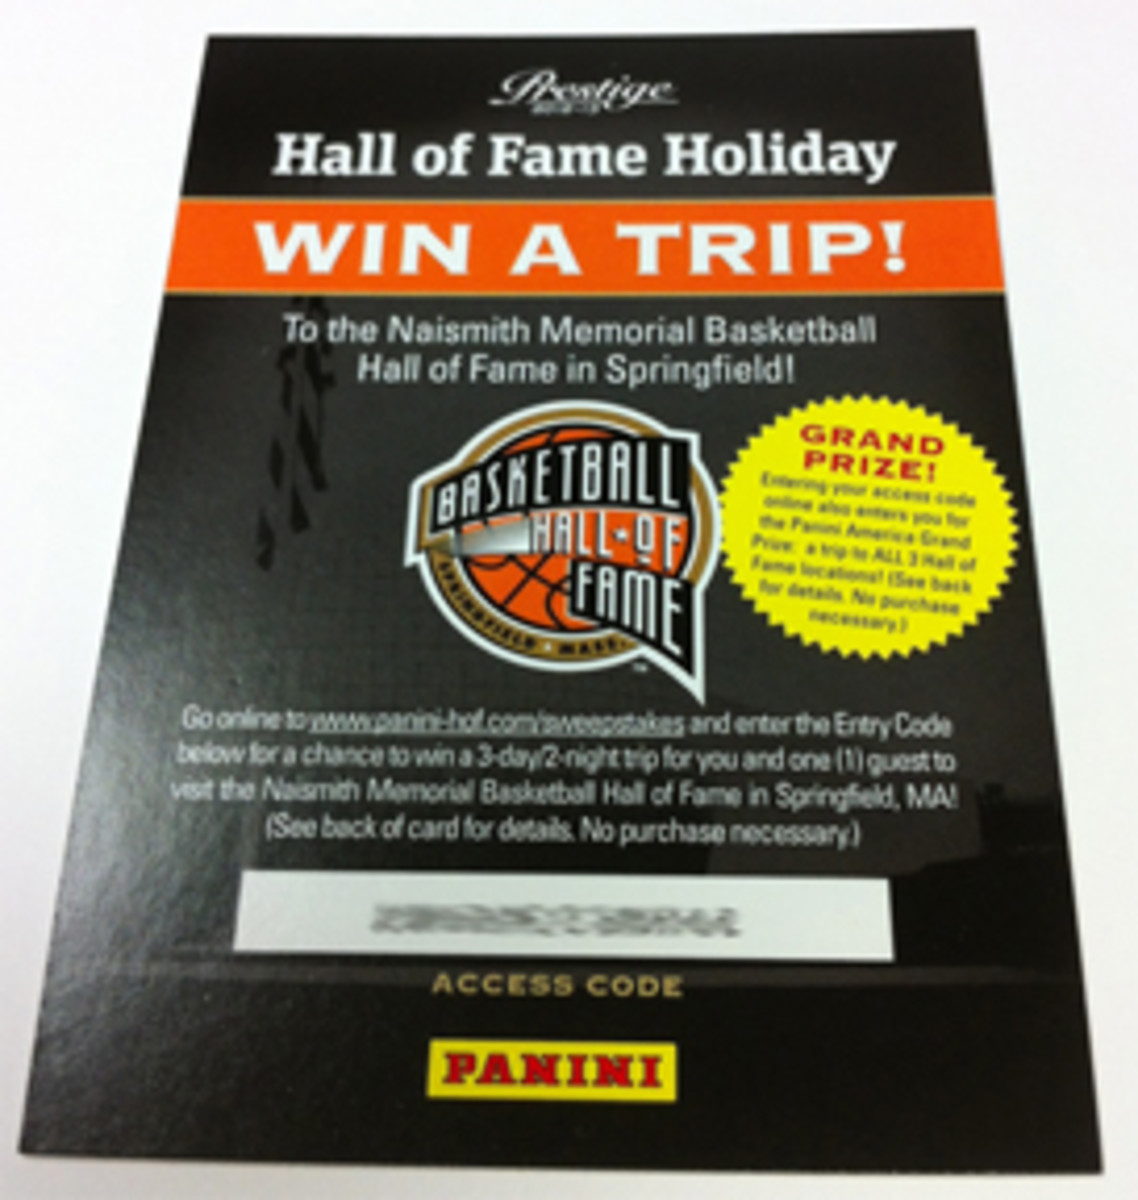 prestige-basketball-hall-of-fame-giveaway